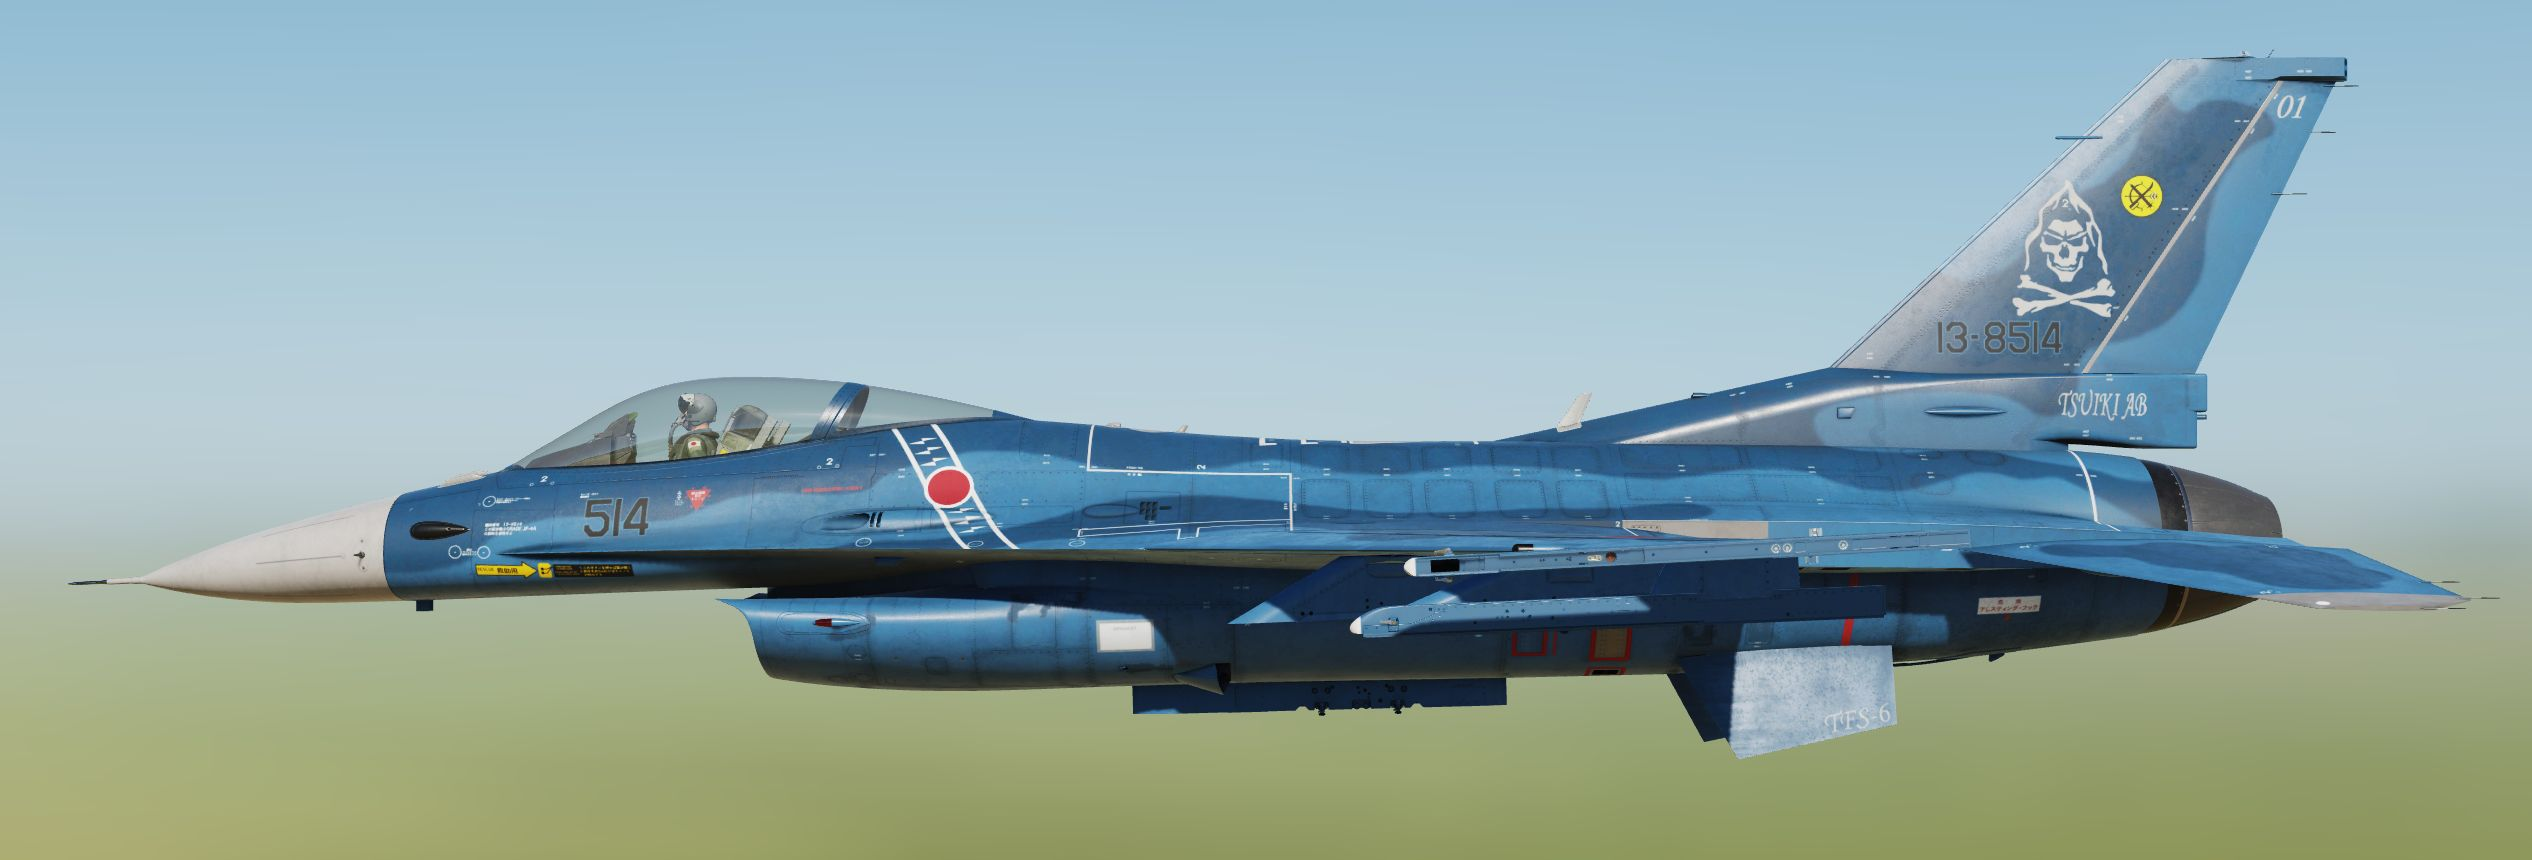 [Fictional] JASDF F-2A 6th TFS V3.0